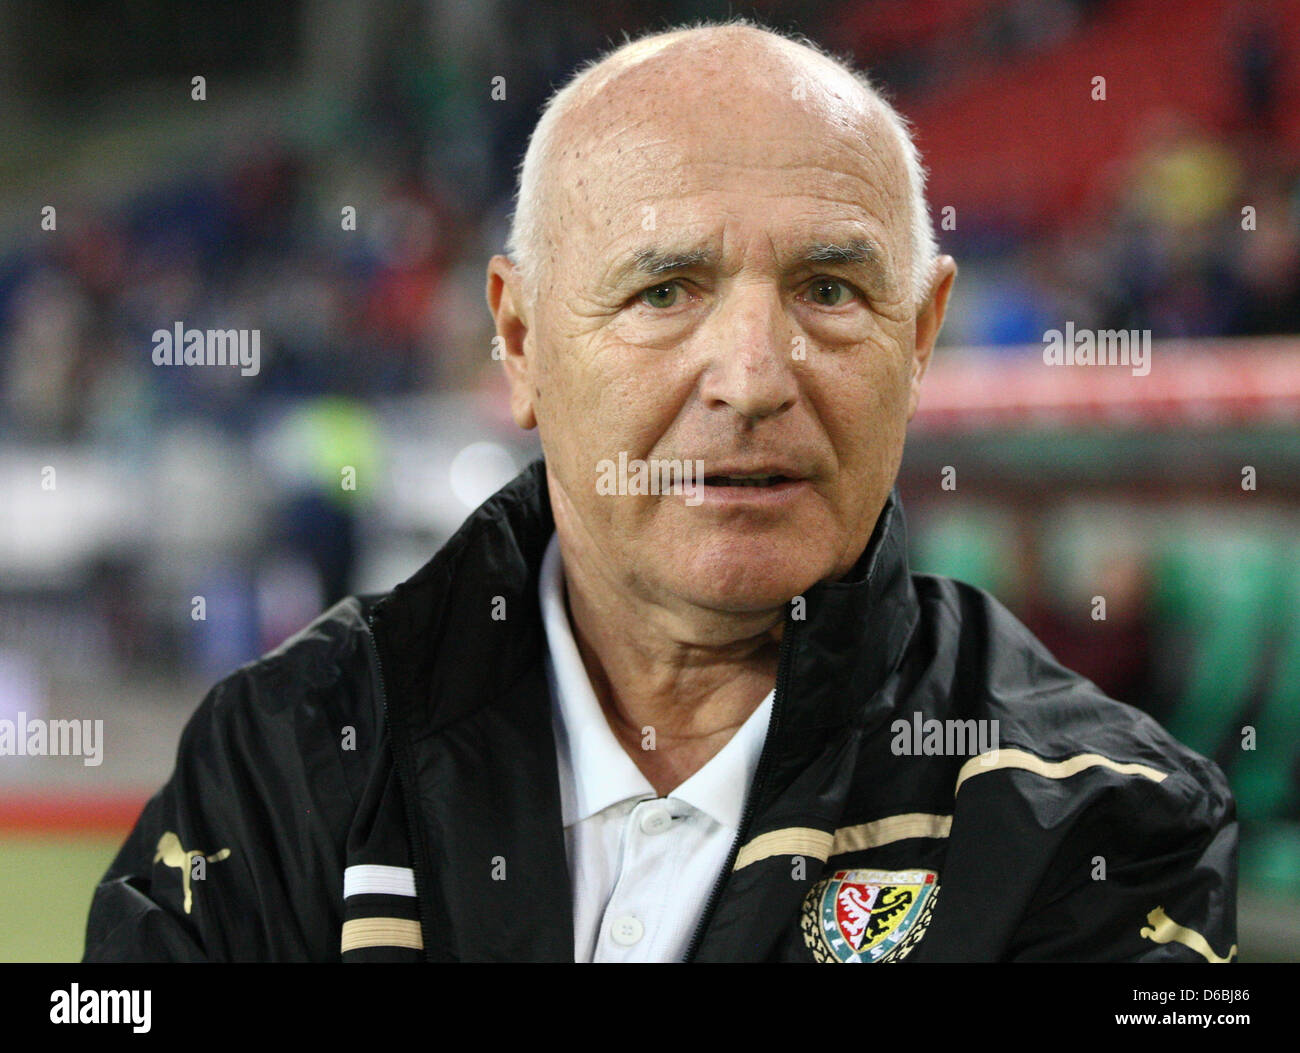 Slask Wroclaw head coach Orest Lenczyk gestures during the UEFA Europa League fourth qualifying round second leg - Stock Image